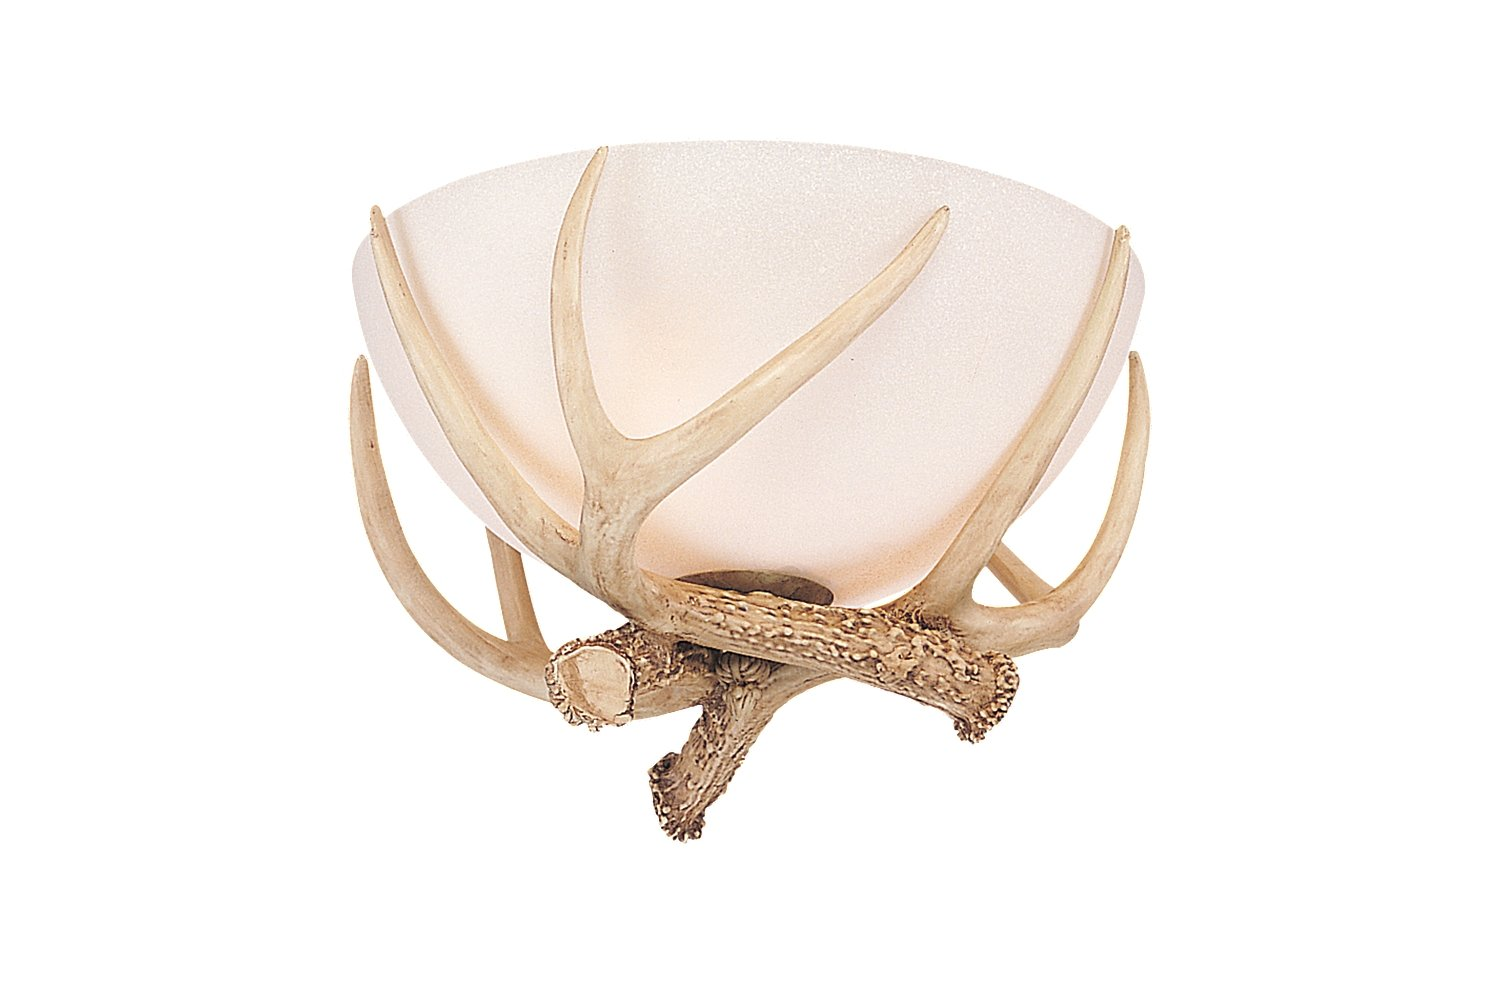 Monte carlo mc79 3 light antler bowl kit antique white scavo monte carlo mc79 3 light antler bowl kit antique white scavo amazon aloadofball